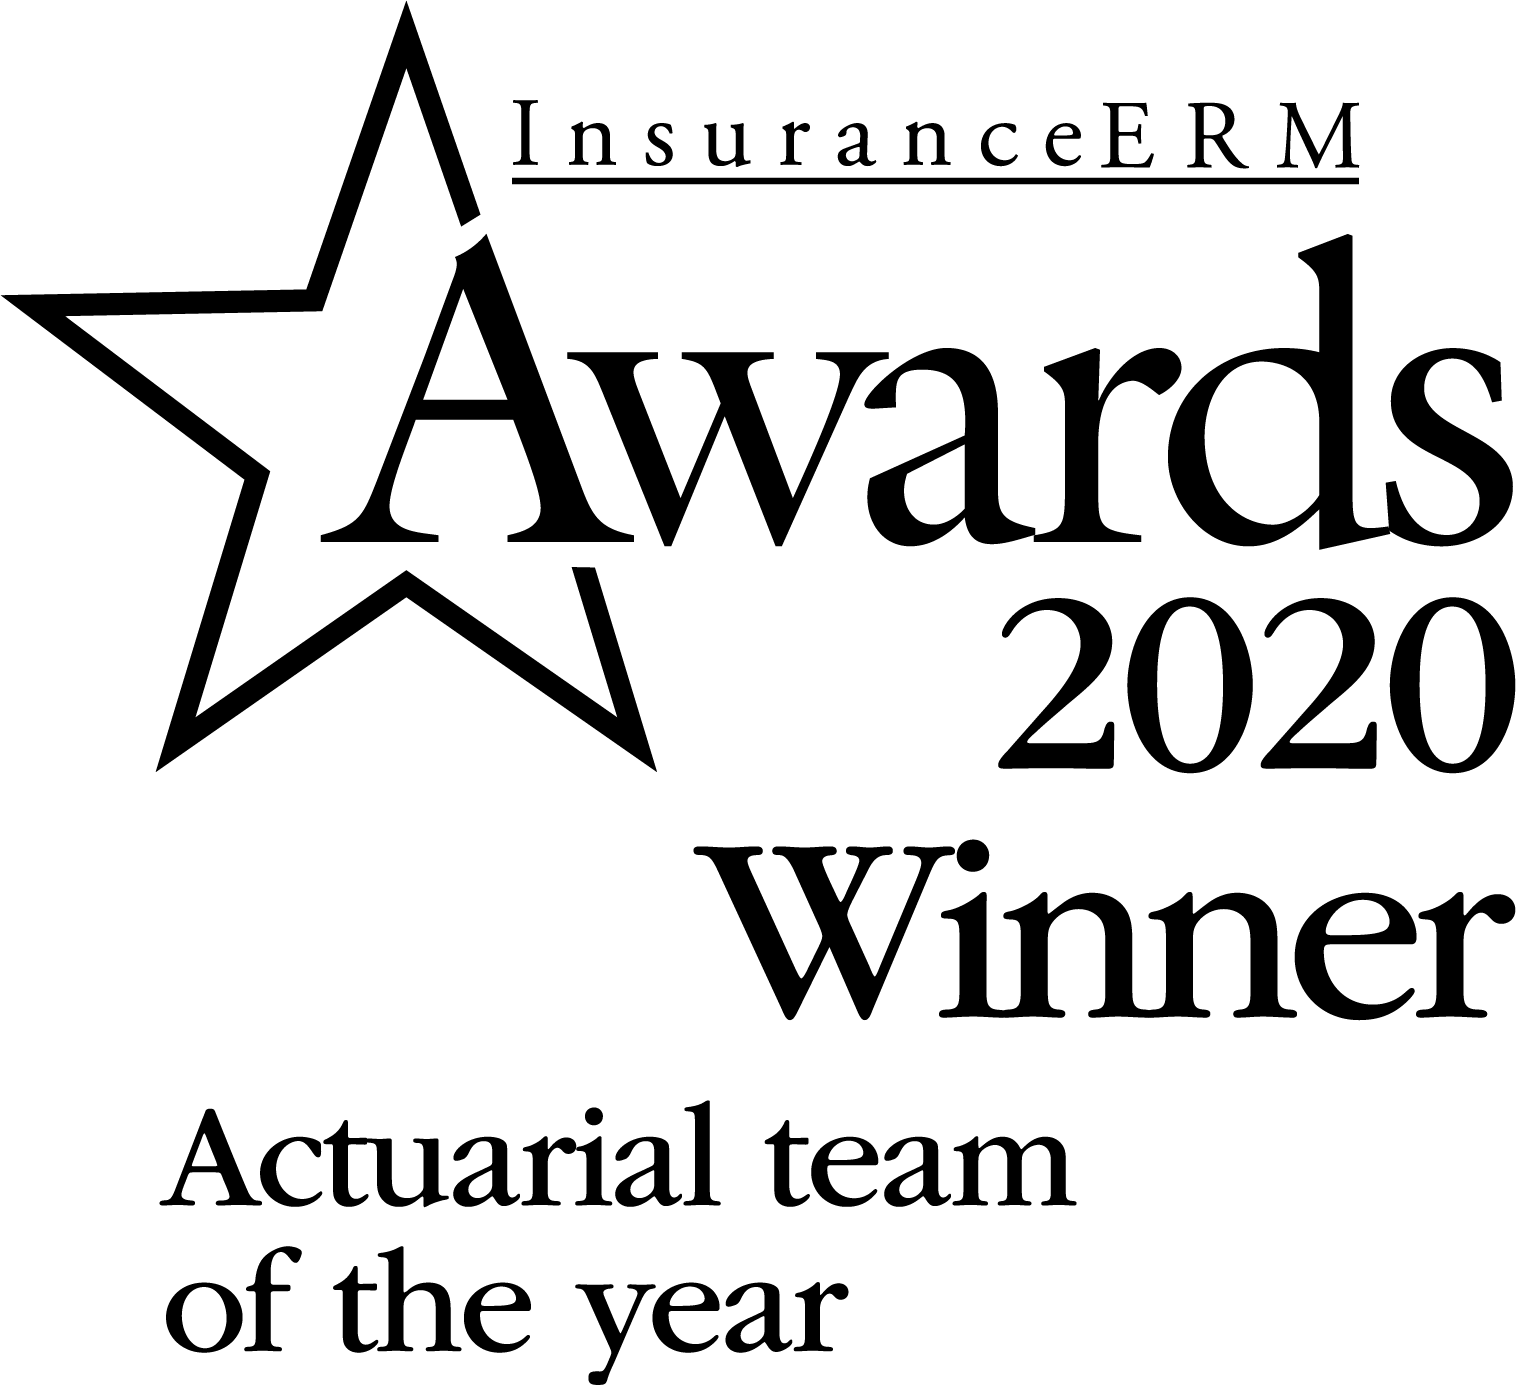 Actuarial team of the year 2020